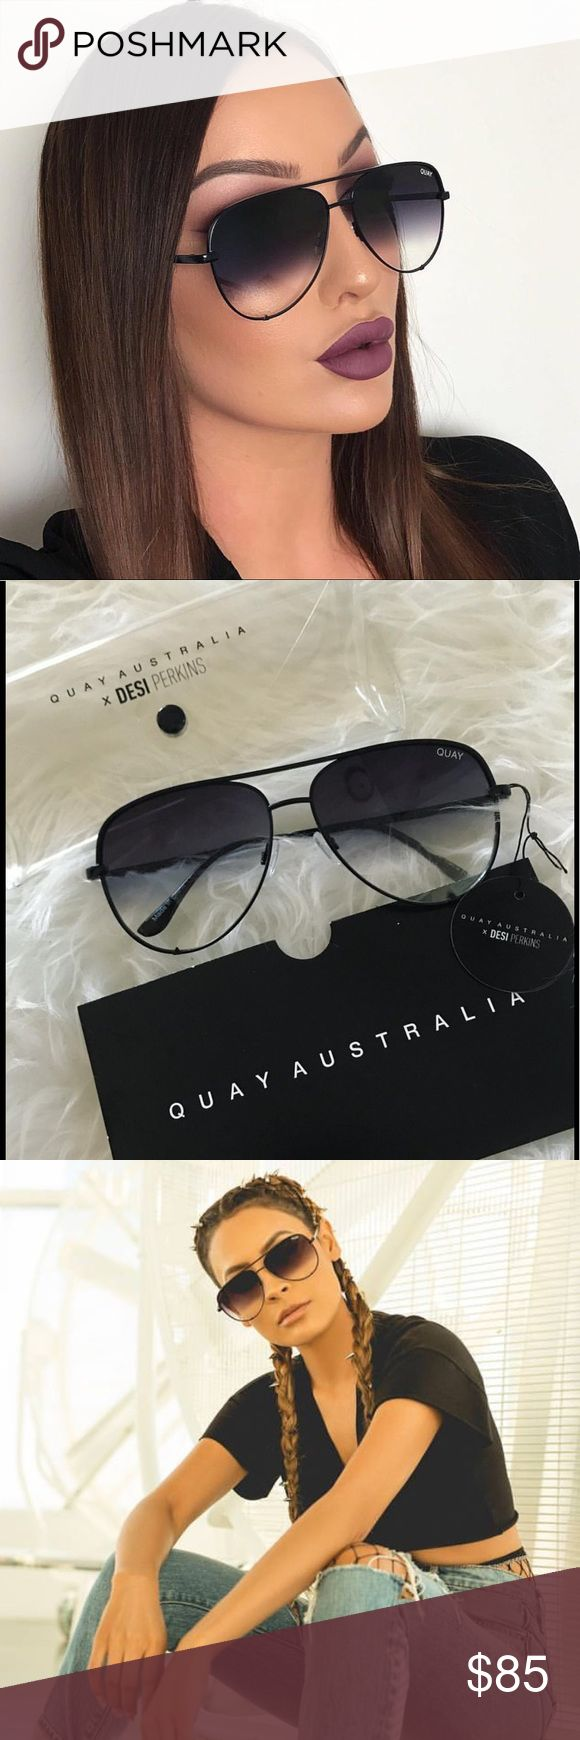 QUAY Australia High Key Black Fade The newest sunnies by Quay Australia SOLD OUT almost everywhere! Get these exclusive sunnies from the Quay Australia / Desi Perkins limited editions, brand new complete with case! Quay Australia Accessories Sunglasses